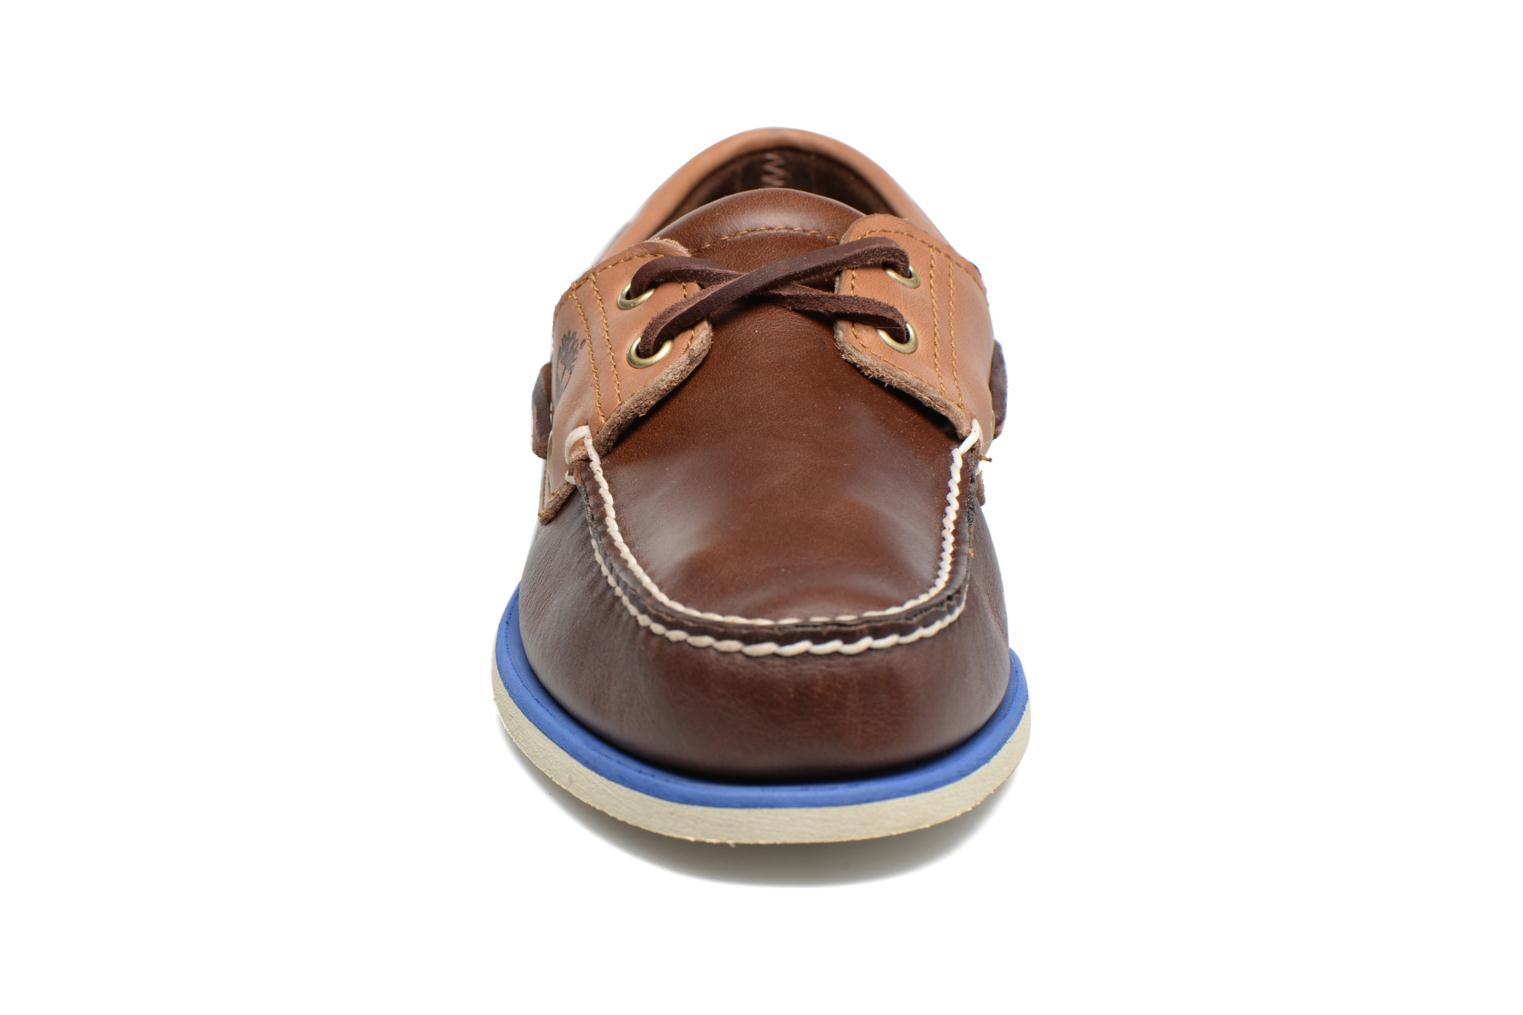 Chaussures à lacets Timberland Classic Boat 2 Eye Marron vue portées chaussures